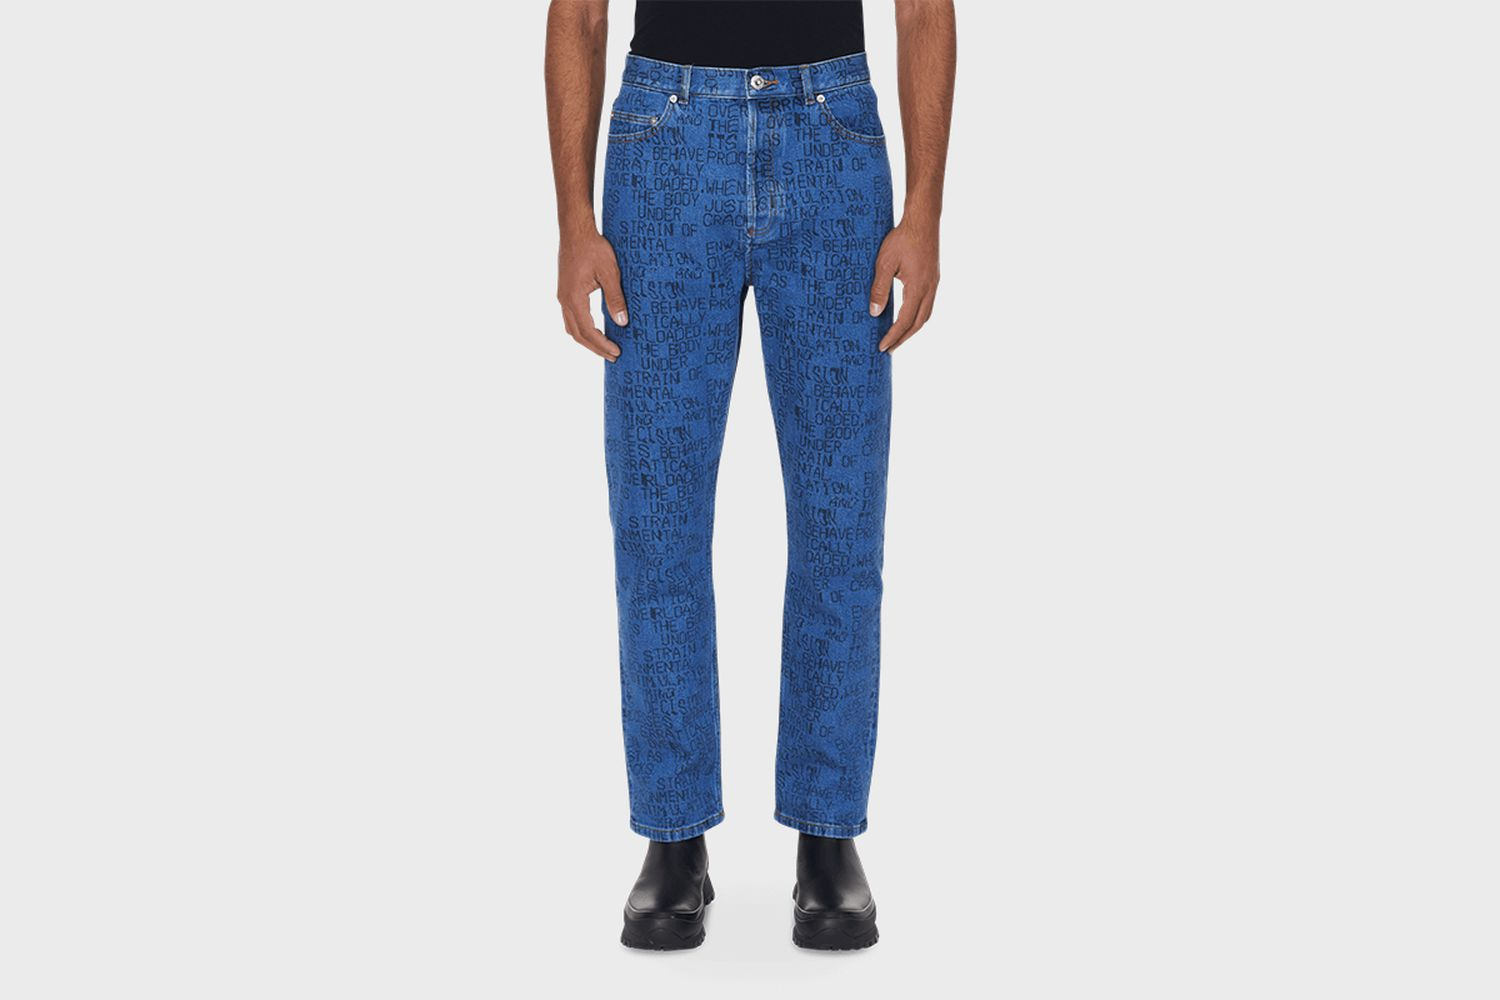 Crypt Jeans